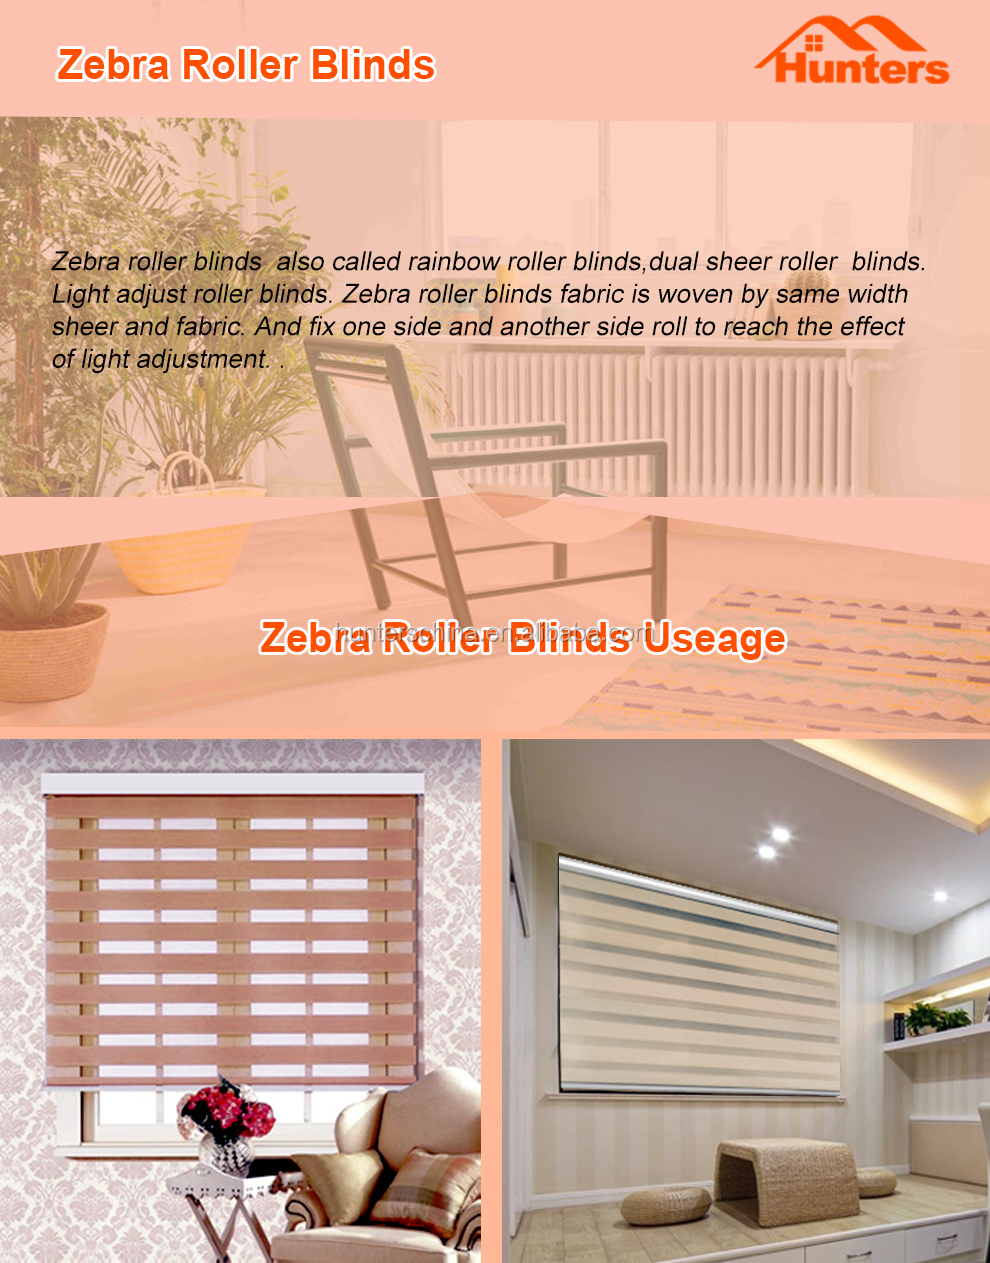 and day decor one hack window windows blinds h enje roller renovation ome cutting your fit ikea design to skogskl shades ver